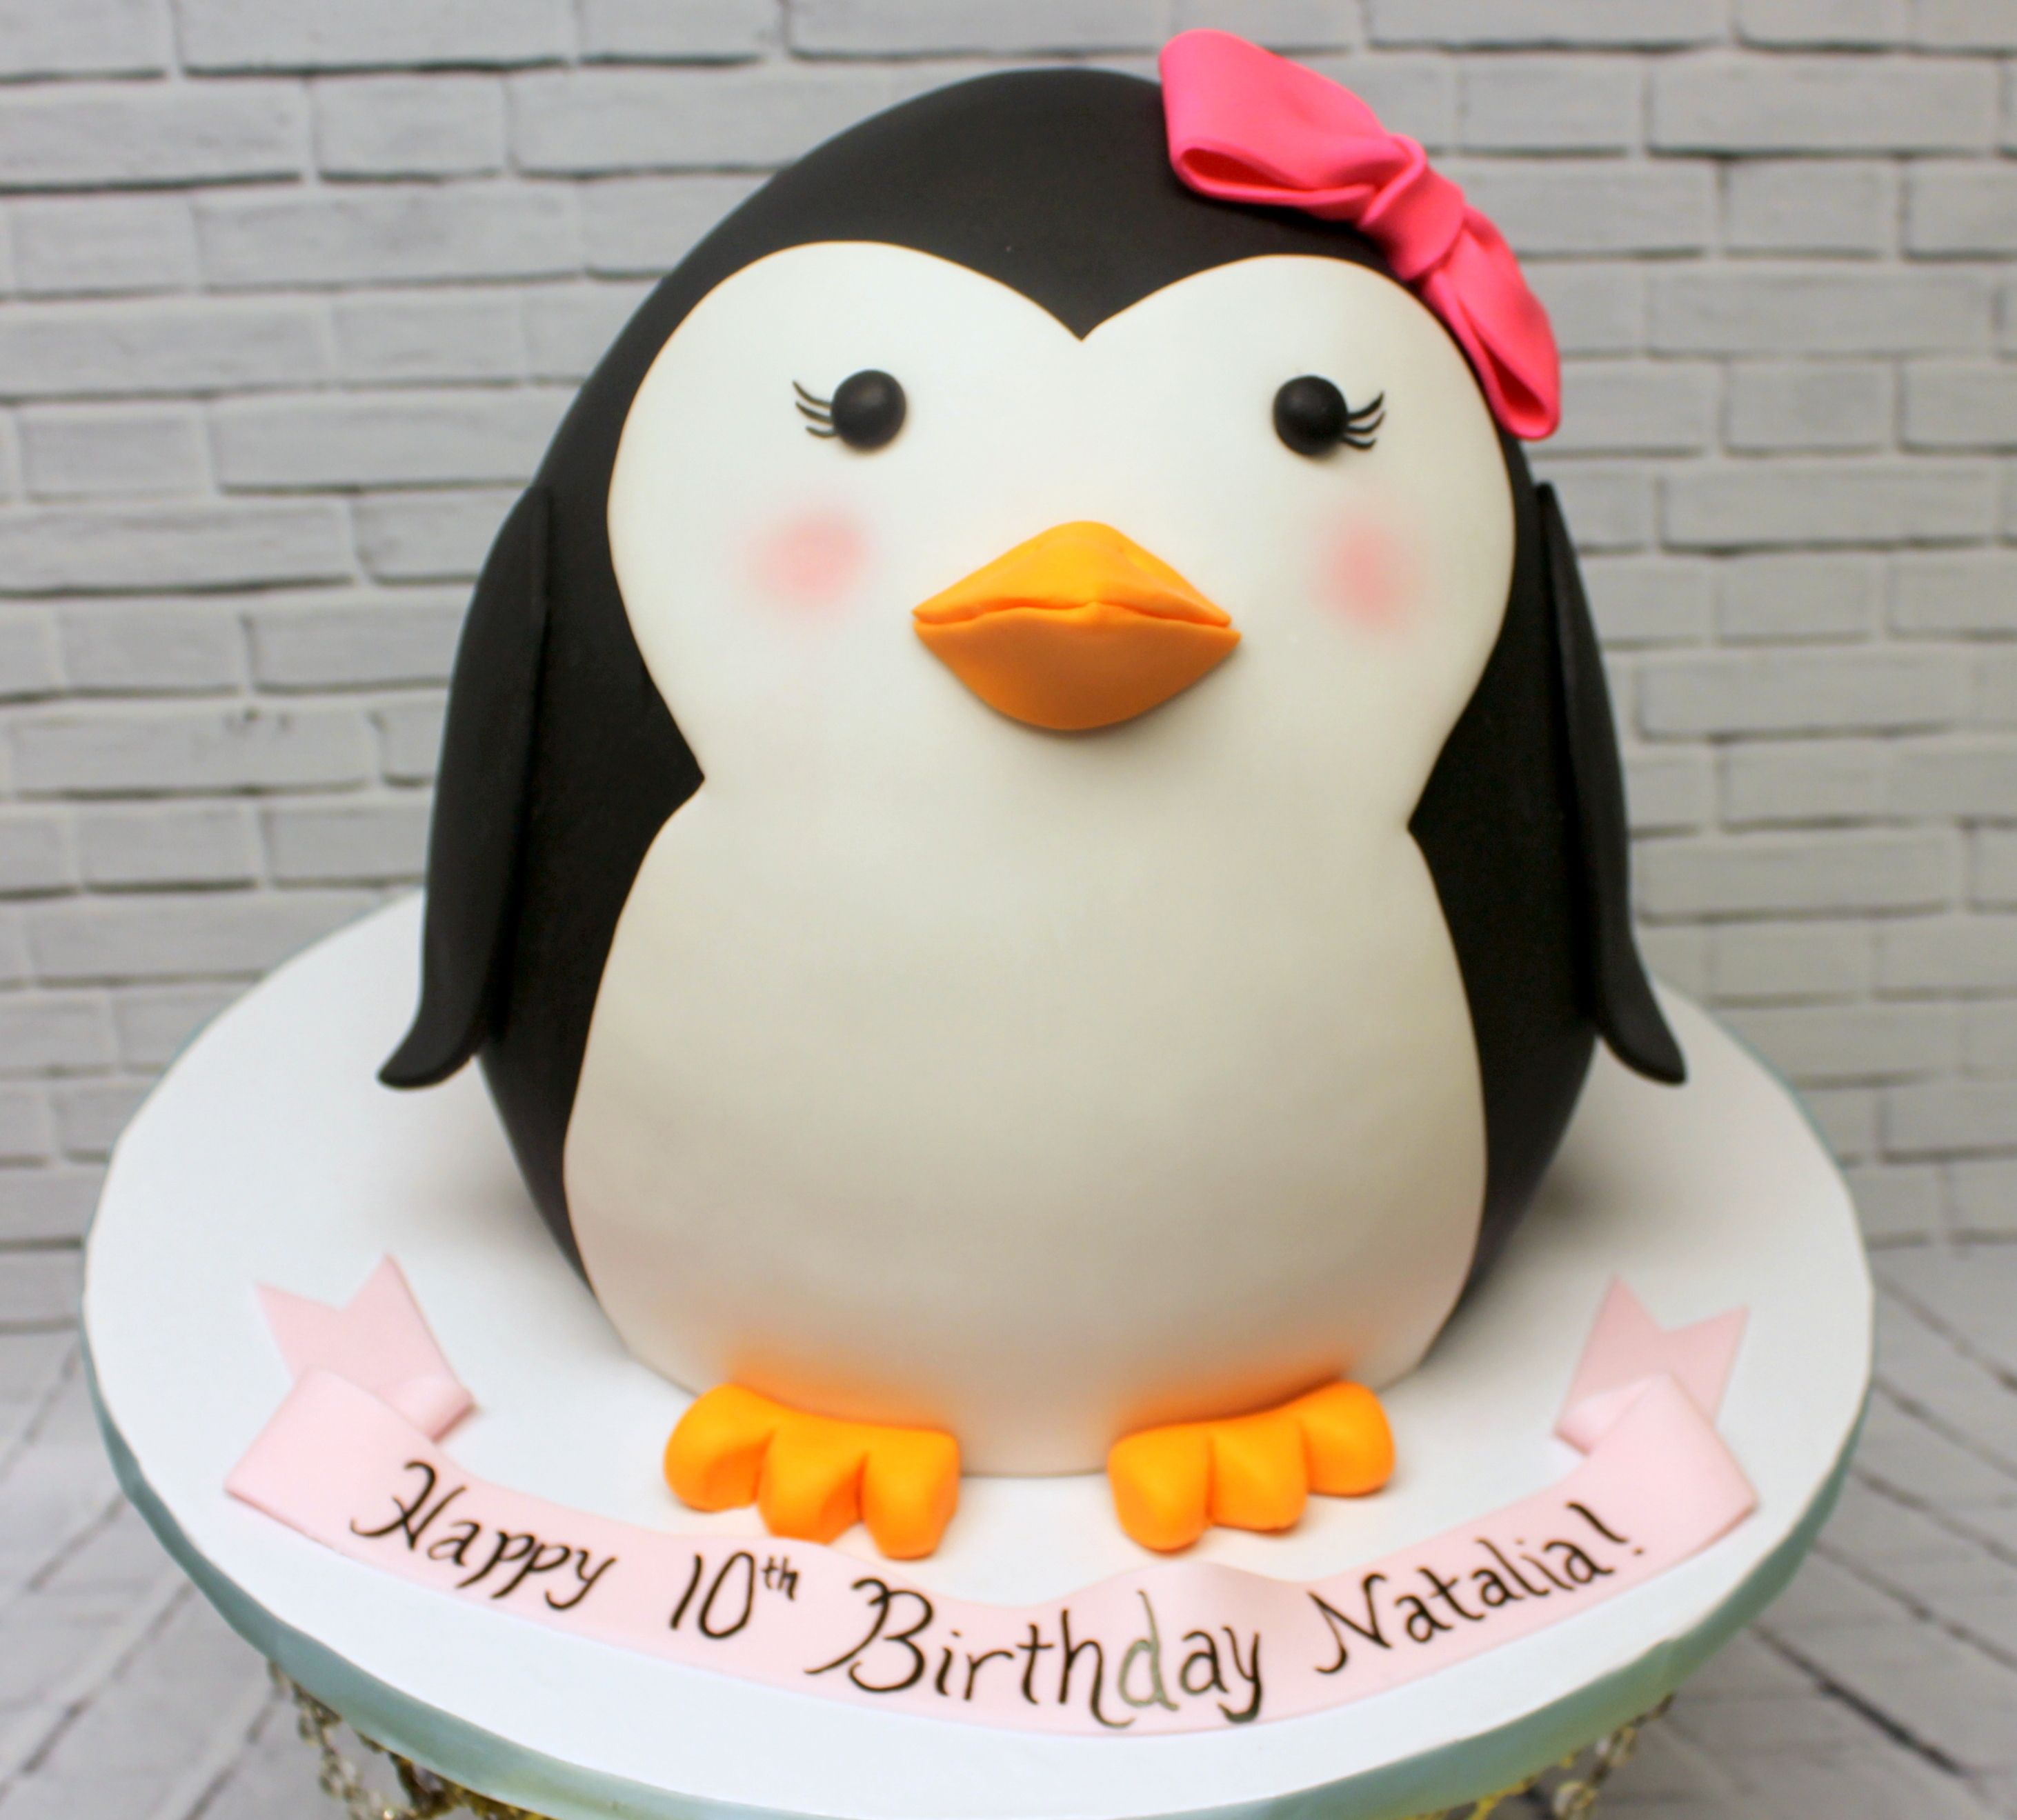 Excellent Such An Adorable Penguin Cake For A Birthday Celebration Funny Birthday Cards Online Aeocydamsfinfo